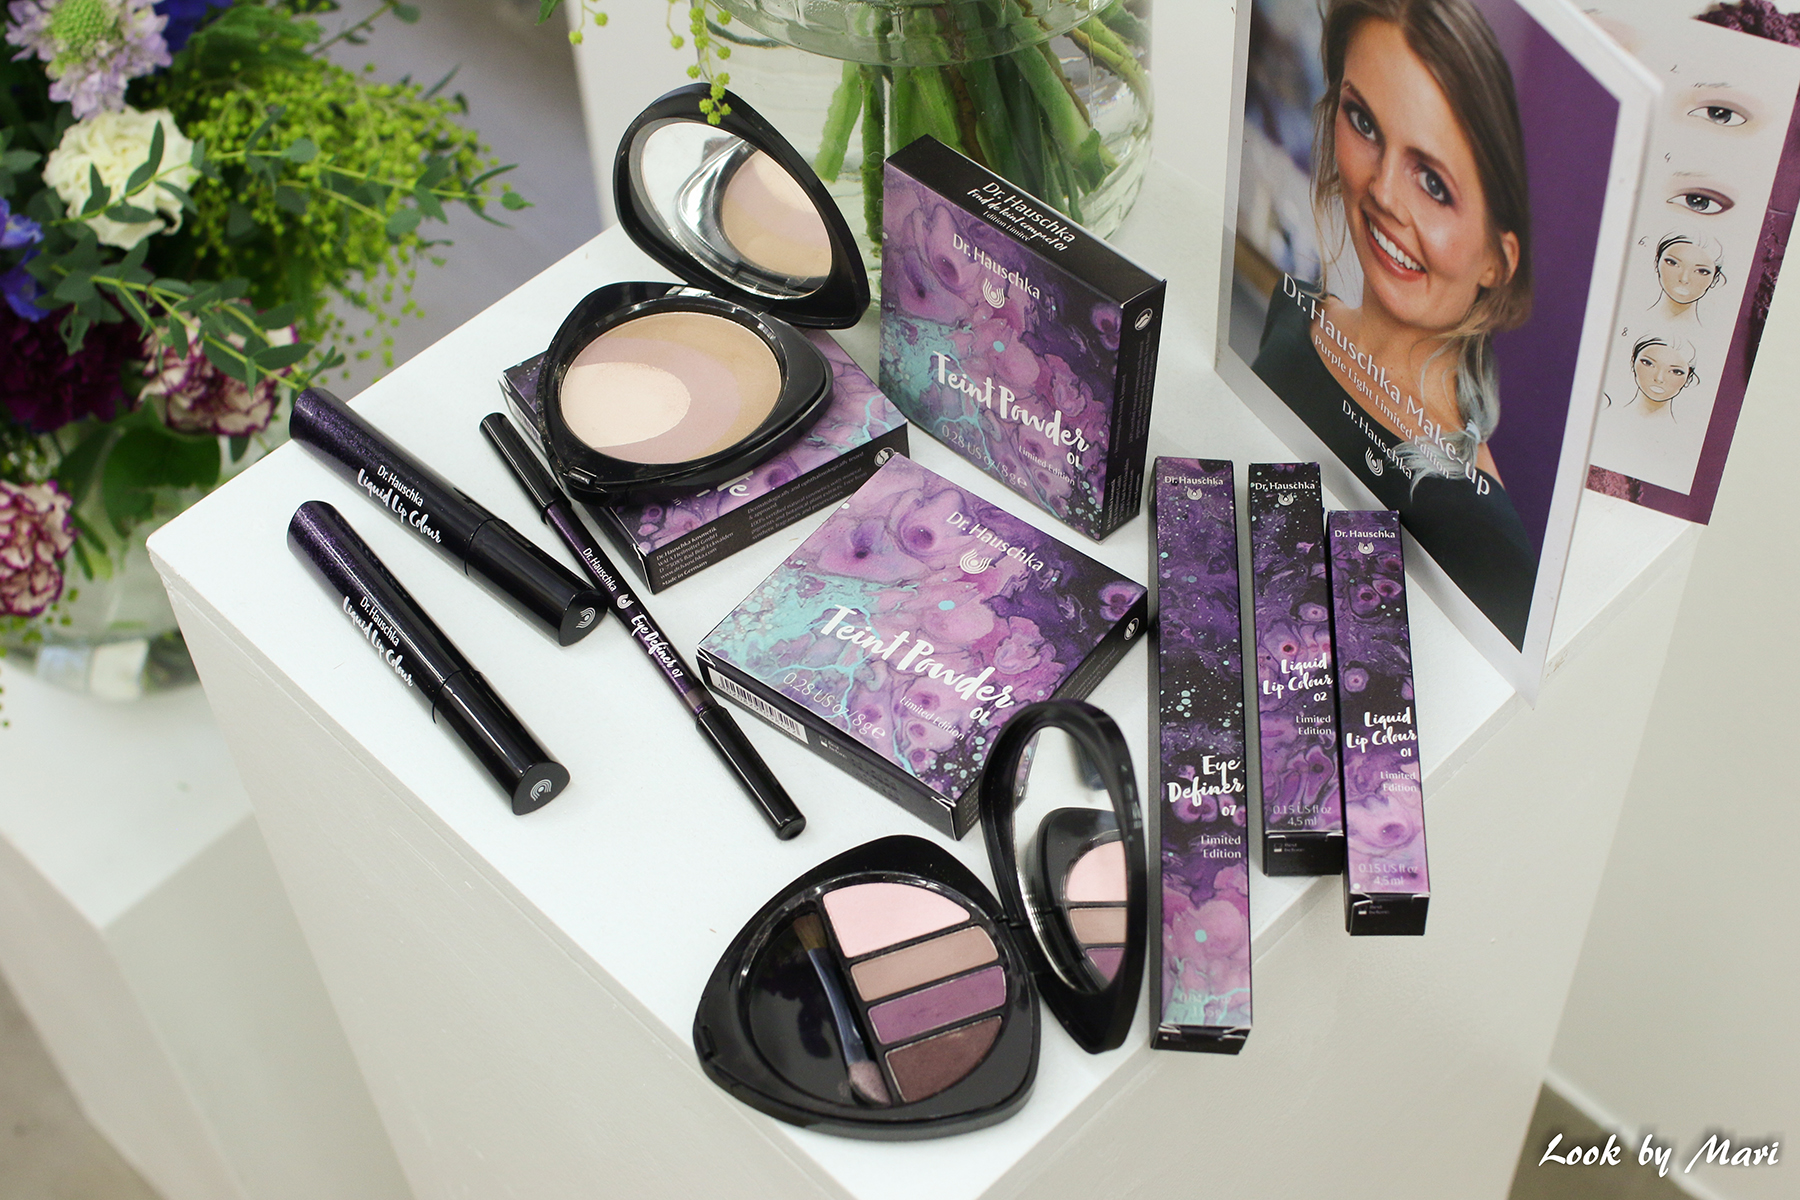 1 dr. hauschka purple light collection 2018 limited edition products tuotteet